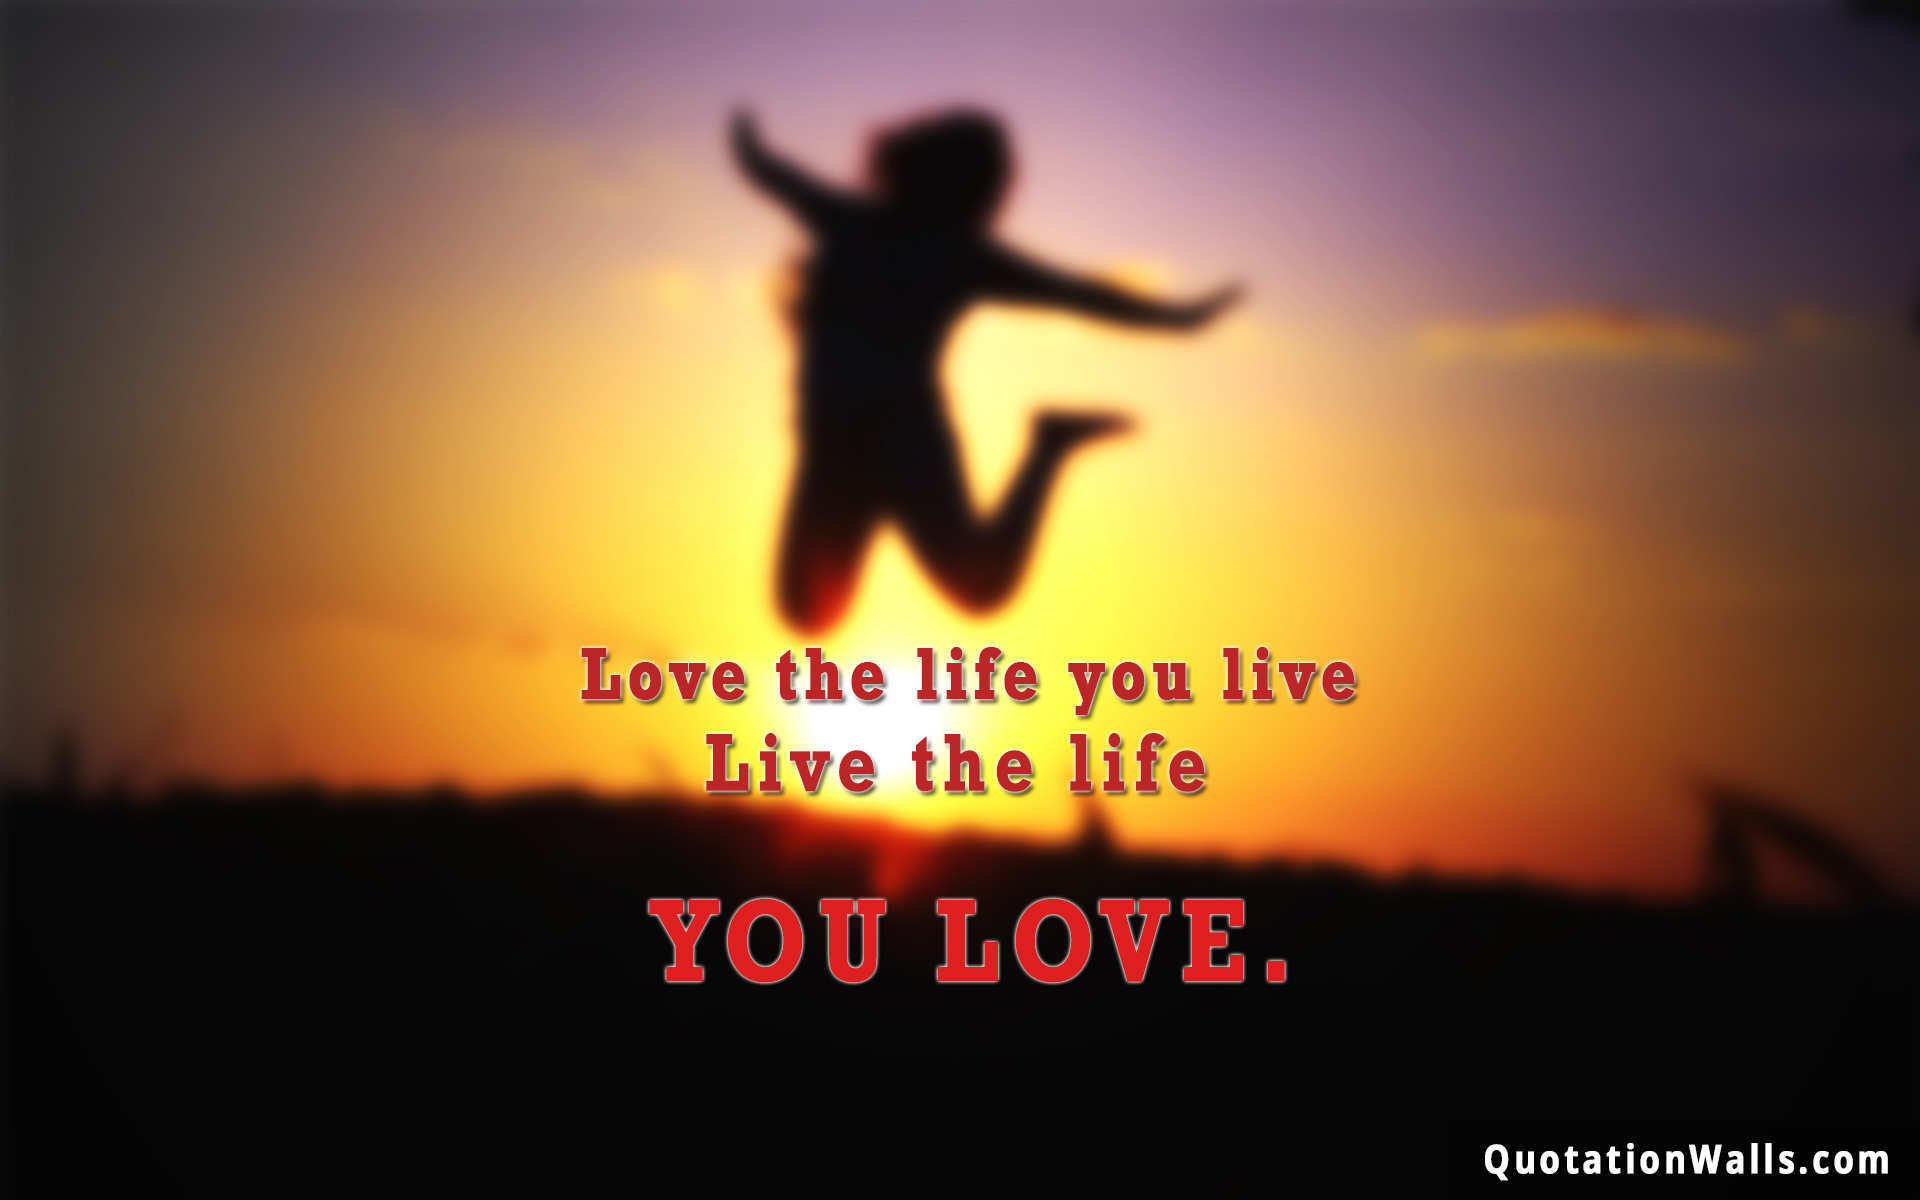 Love Life Wallpapers : Love Life Life Wallpaper for Mobile - QuotationWalls